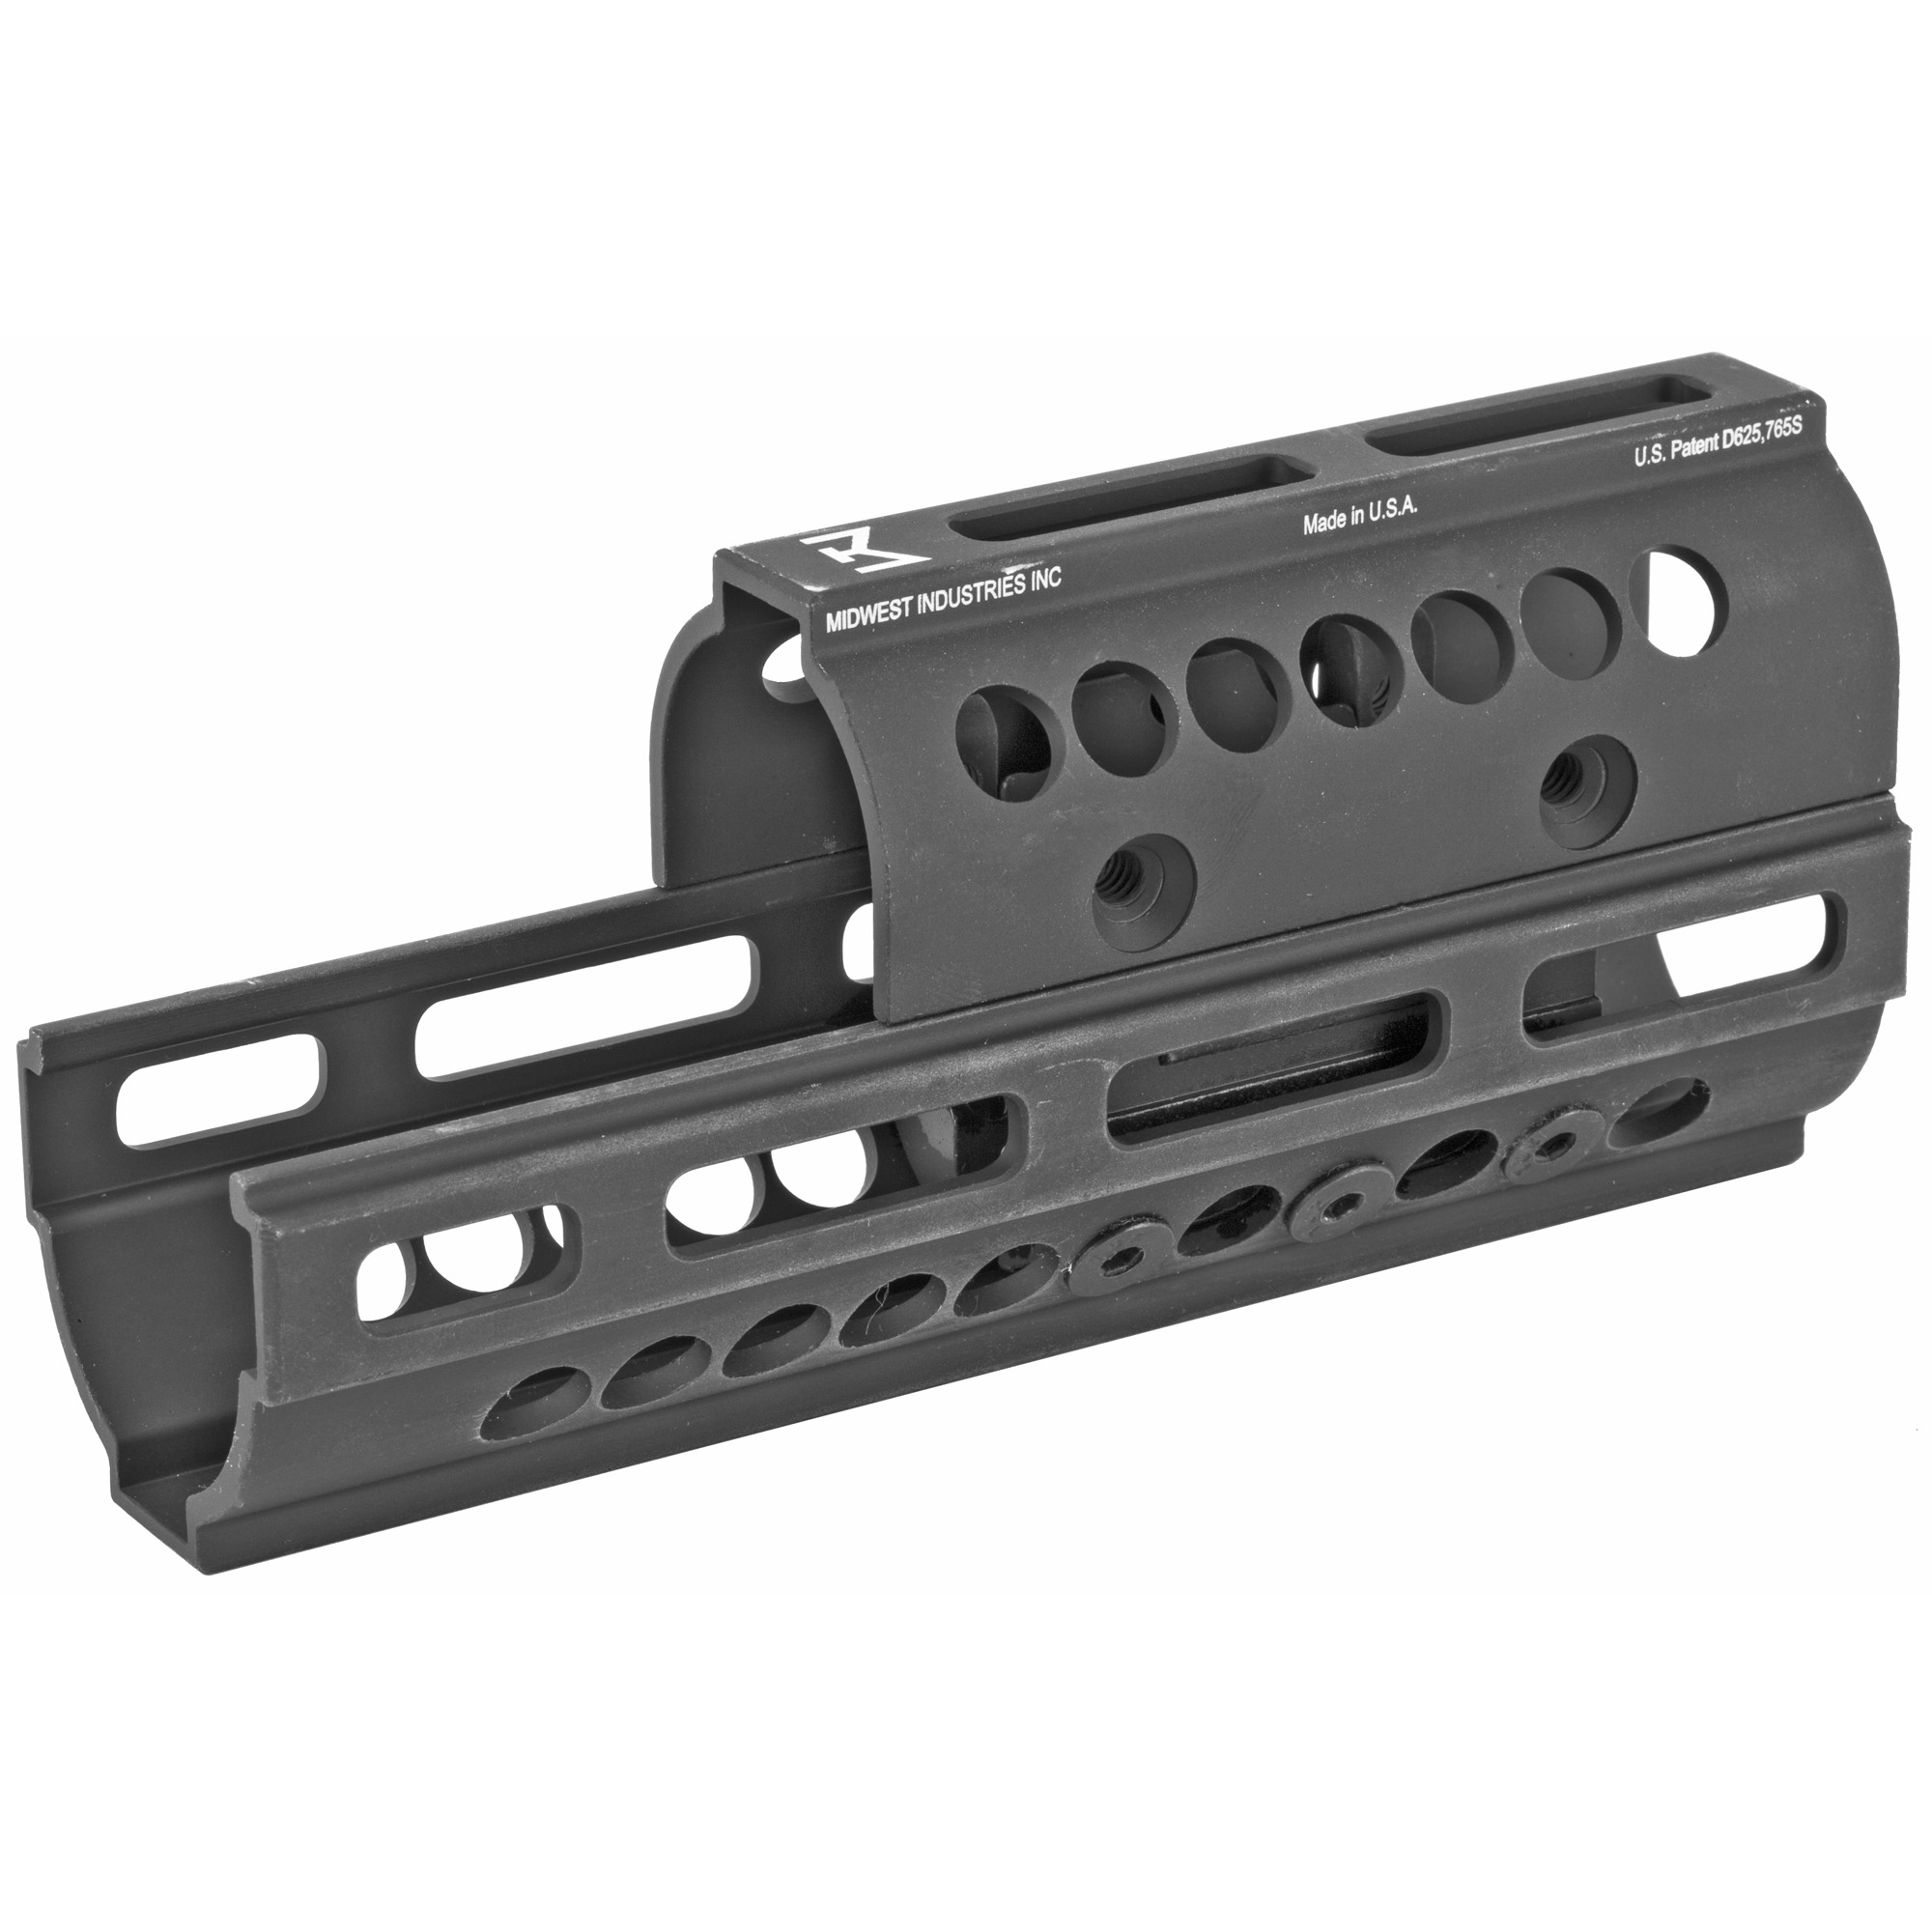 "Midwest Industries is a proven leader in the firearm industry. Made in America"" focusing on the small details to make your rifle platform better. The addition of their AK series of handguards to your rifle platform creates the rail space you need to add your accessories and change the feel of your rifle with a new streamline design. This AK Universal M-LOK compatible handguard installs in minutes using nothing but the wrenches provided with the kit. Includes one five slot M-LOK compatible rail section and fits AK-47 & AK-74 variants."